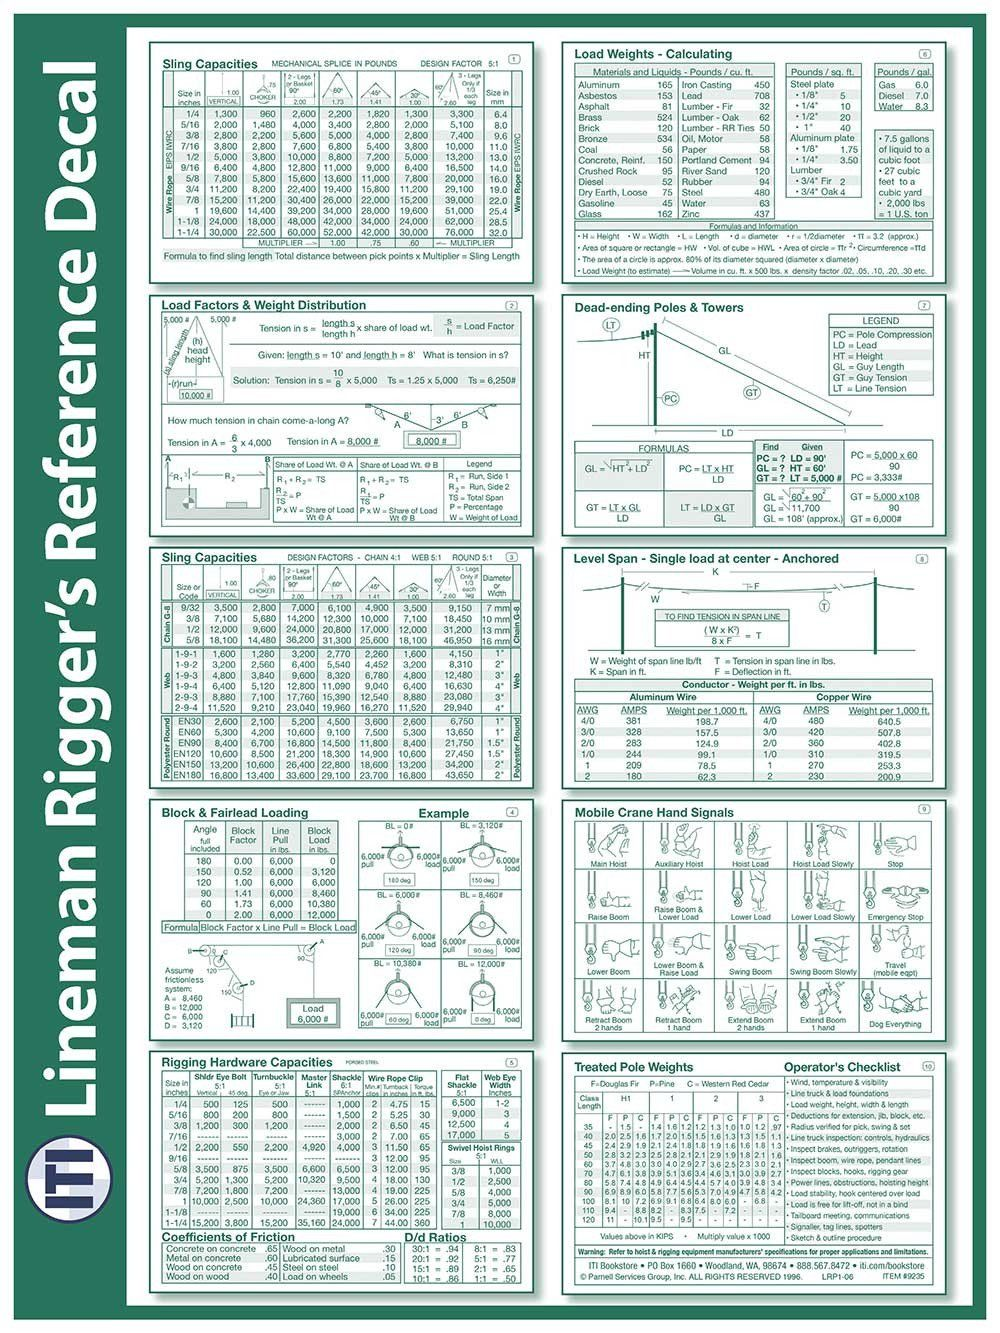 Lineman Rigger Reference Decal in 2019 | Maps | Lineman, Lifting